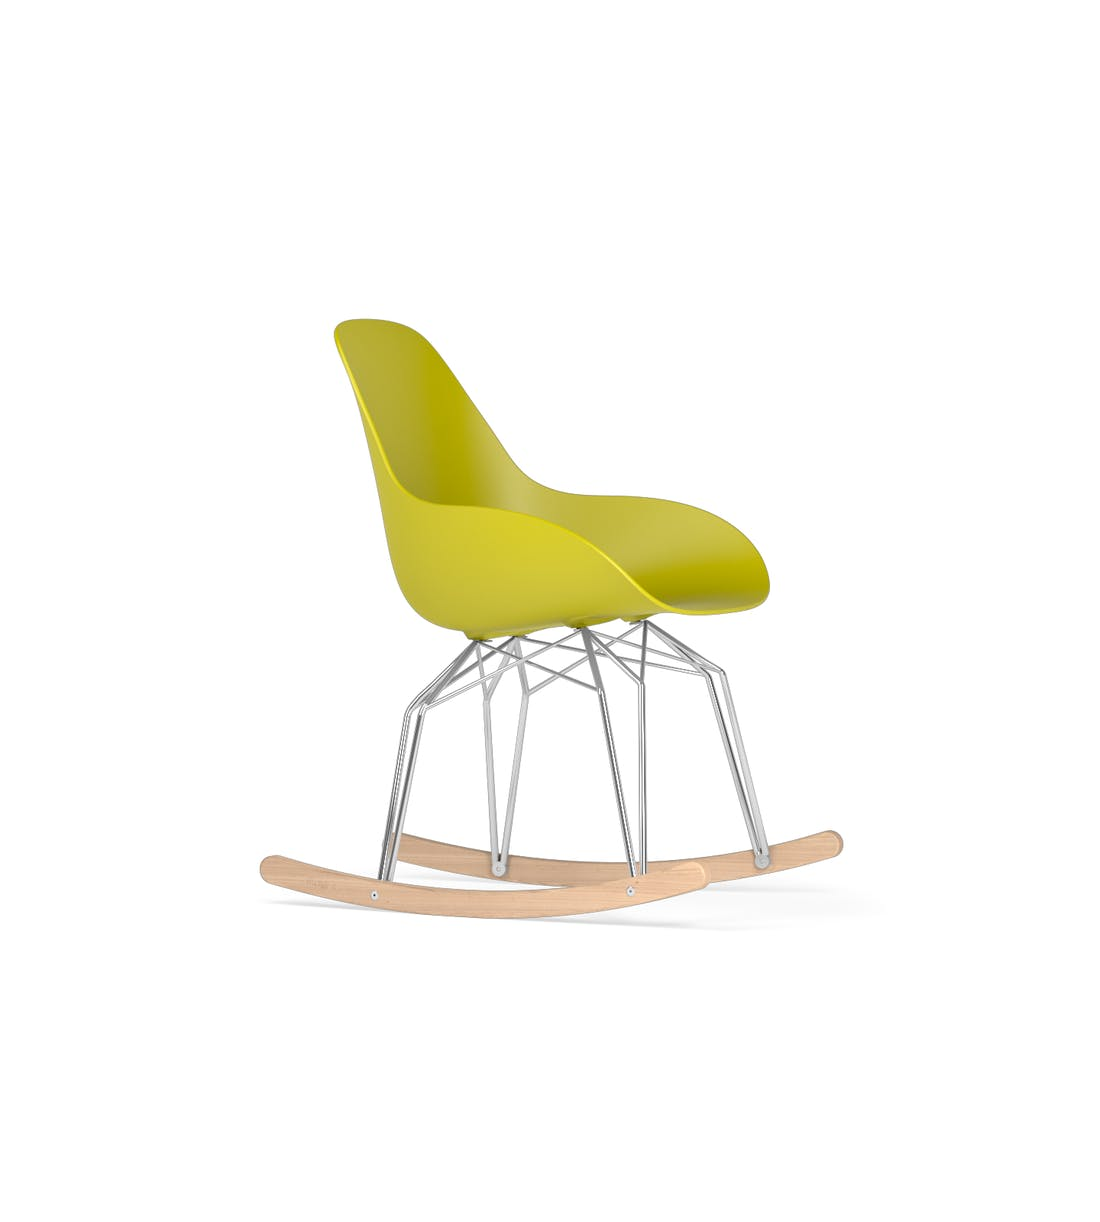 Kubikoff design chair rocking chair